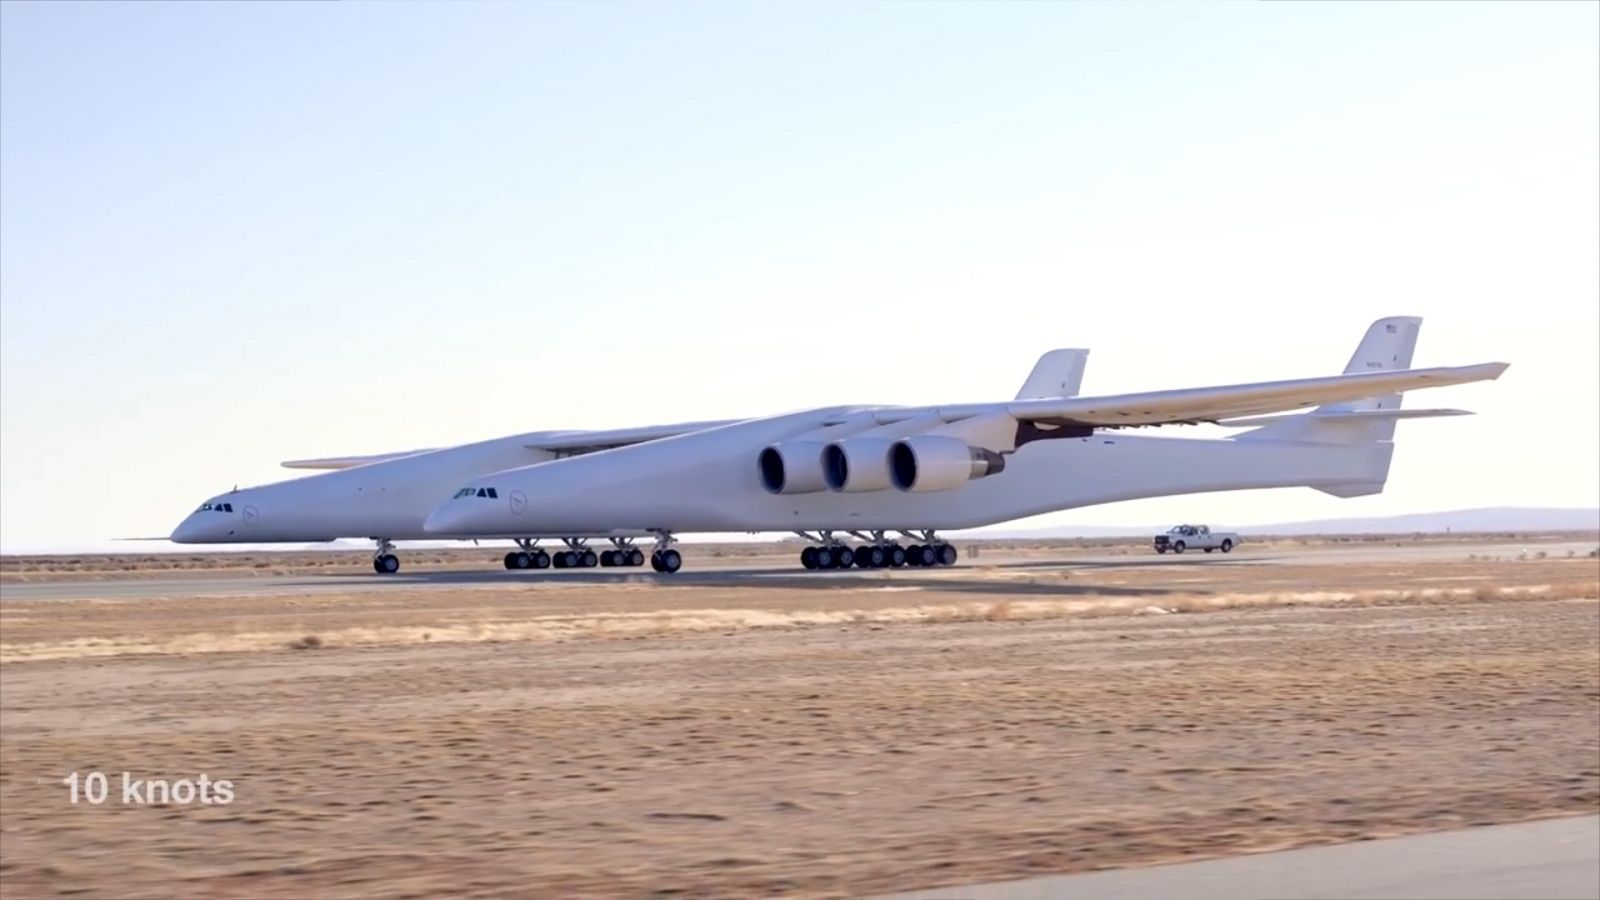 watch-stratolaunch-the-worlds-biggest-plane-as-it-goes-through-its-first-taxi-test